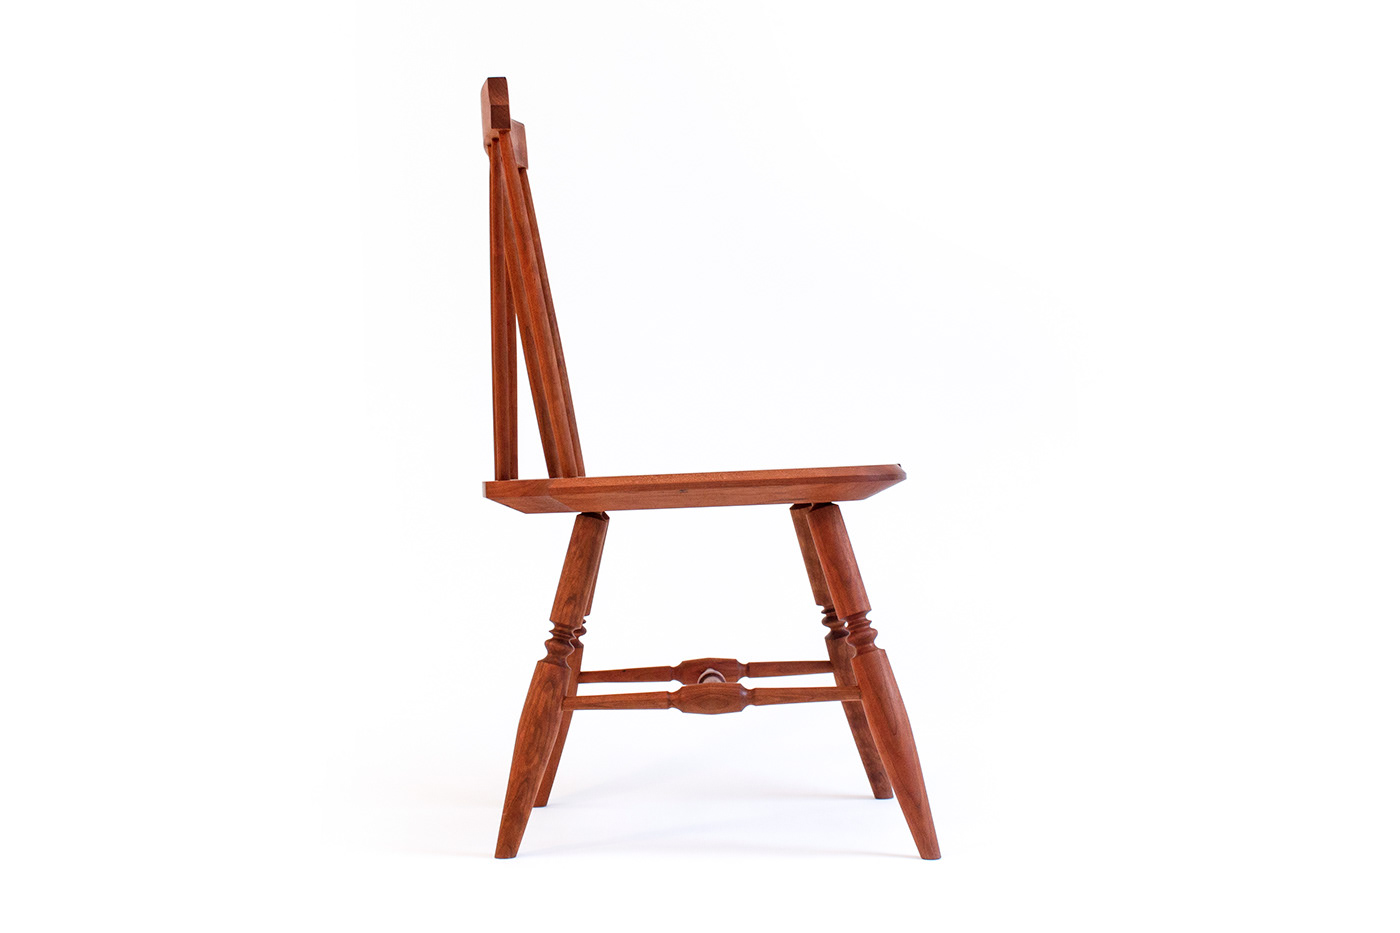 furniture design ,windsor chair,woodworking,hand made